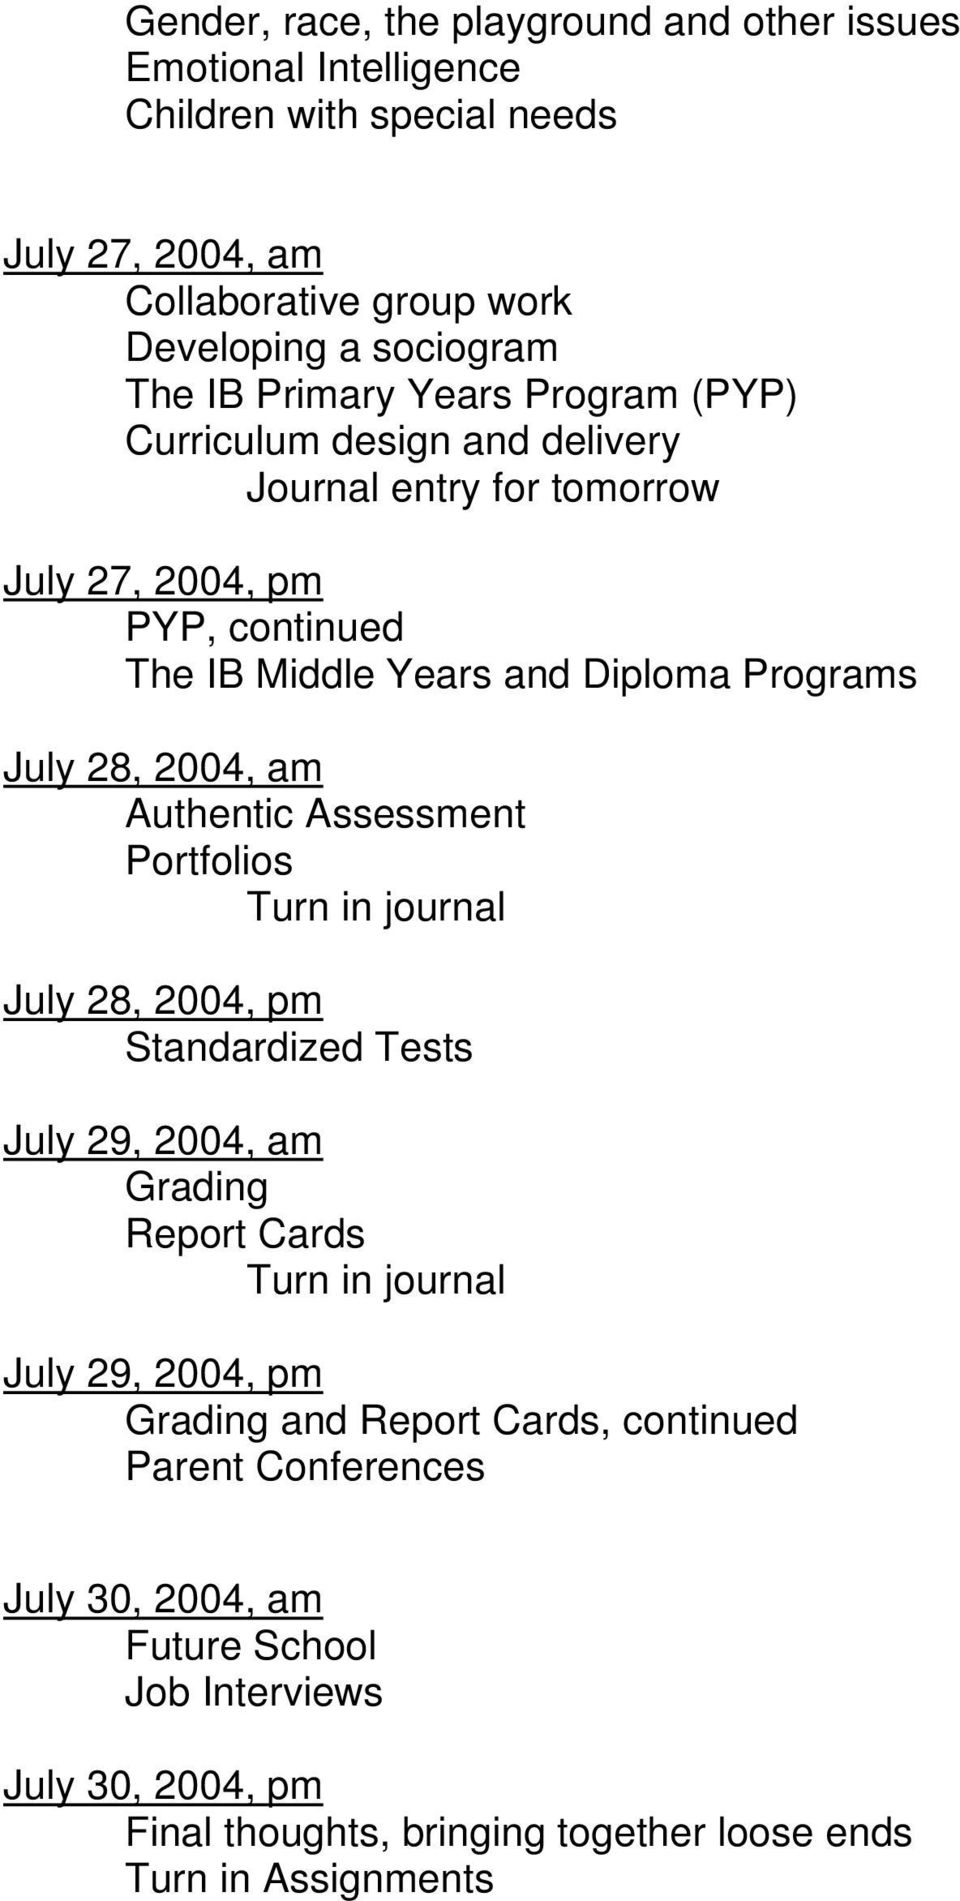 2004, am Authentic Assessment Portfolios Turn in journal July 28, 2004, pm Standardized Tests July 29, 2004, am Grading Report Cards Turn in journal July 29, 2004, pm